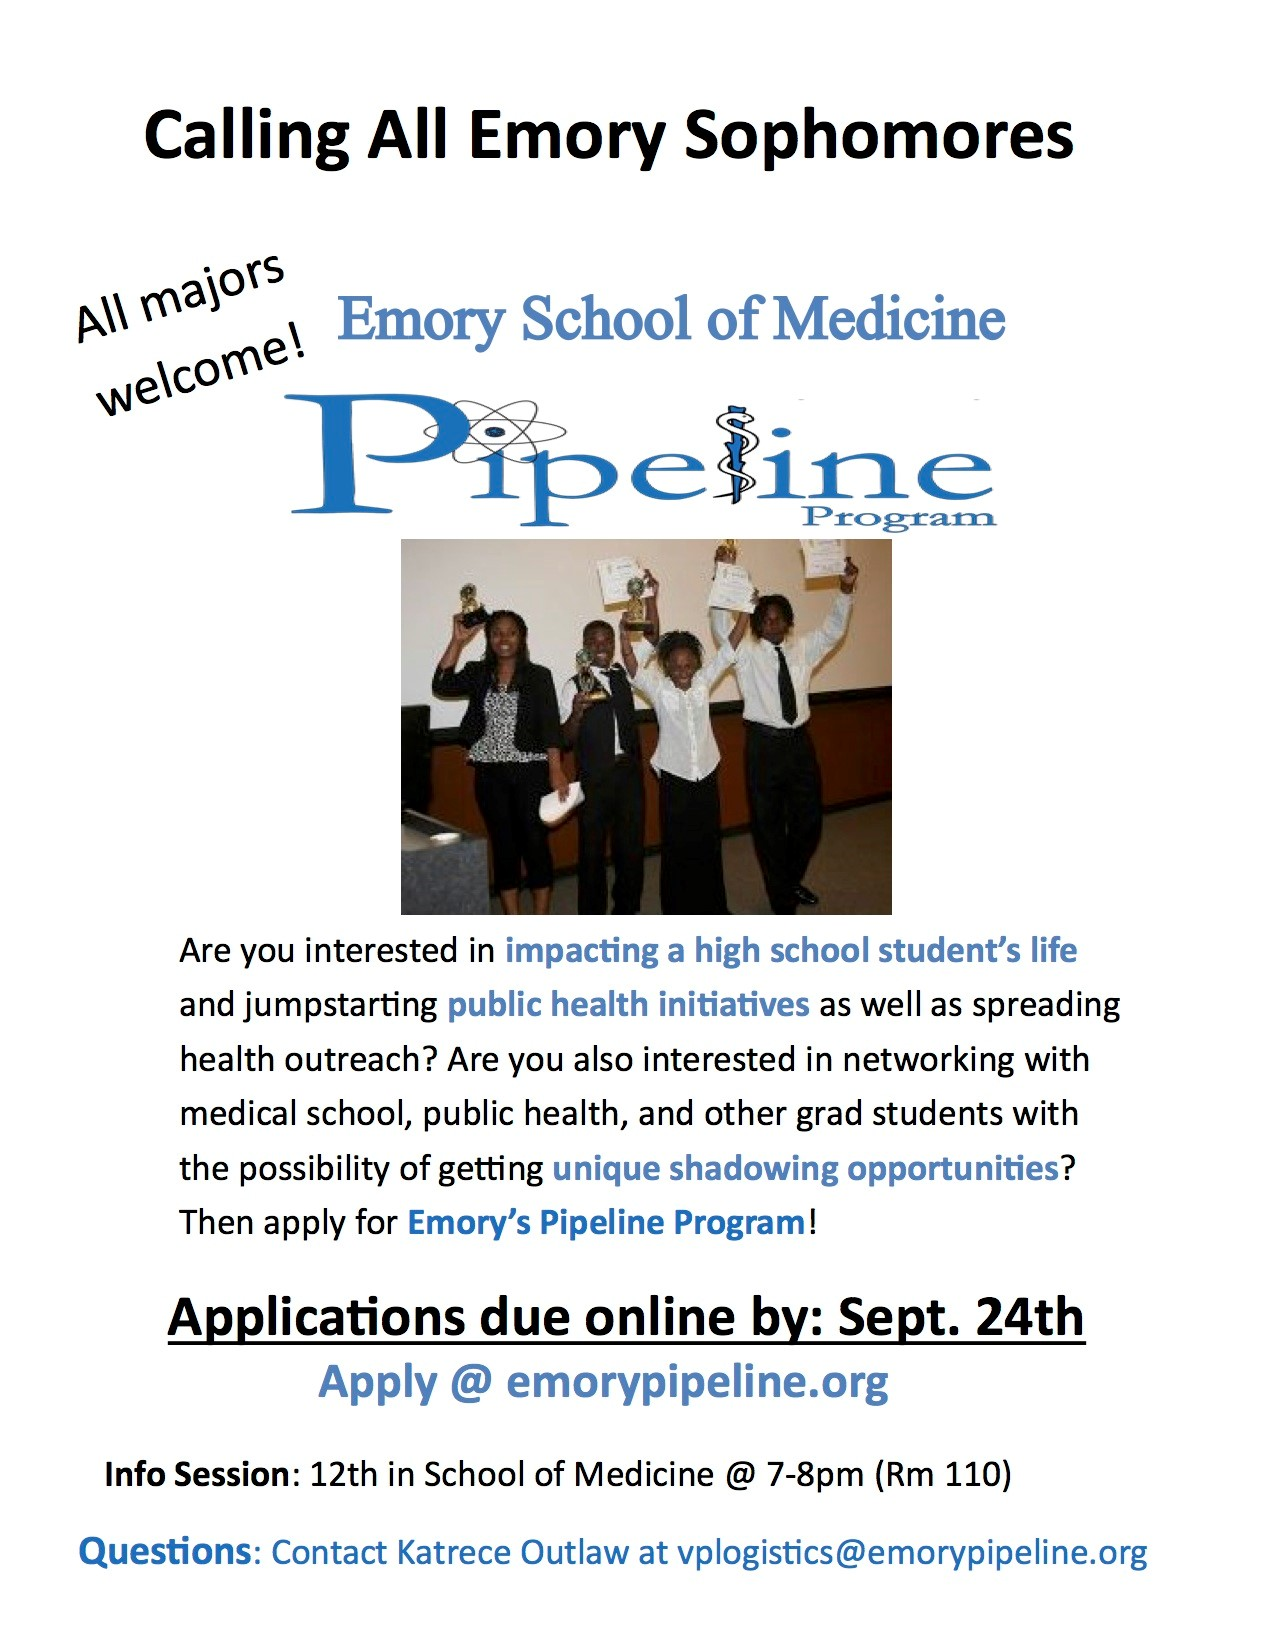 the emory pipeline program essay The bba application essay by sydney hoff prompt: the bba program seeks students who are fully engaged in the emory or oxford communityattach an essay describing the ways in which you have contributed to the campus community since entering emory or oxford.